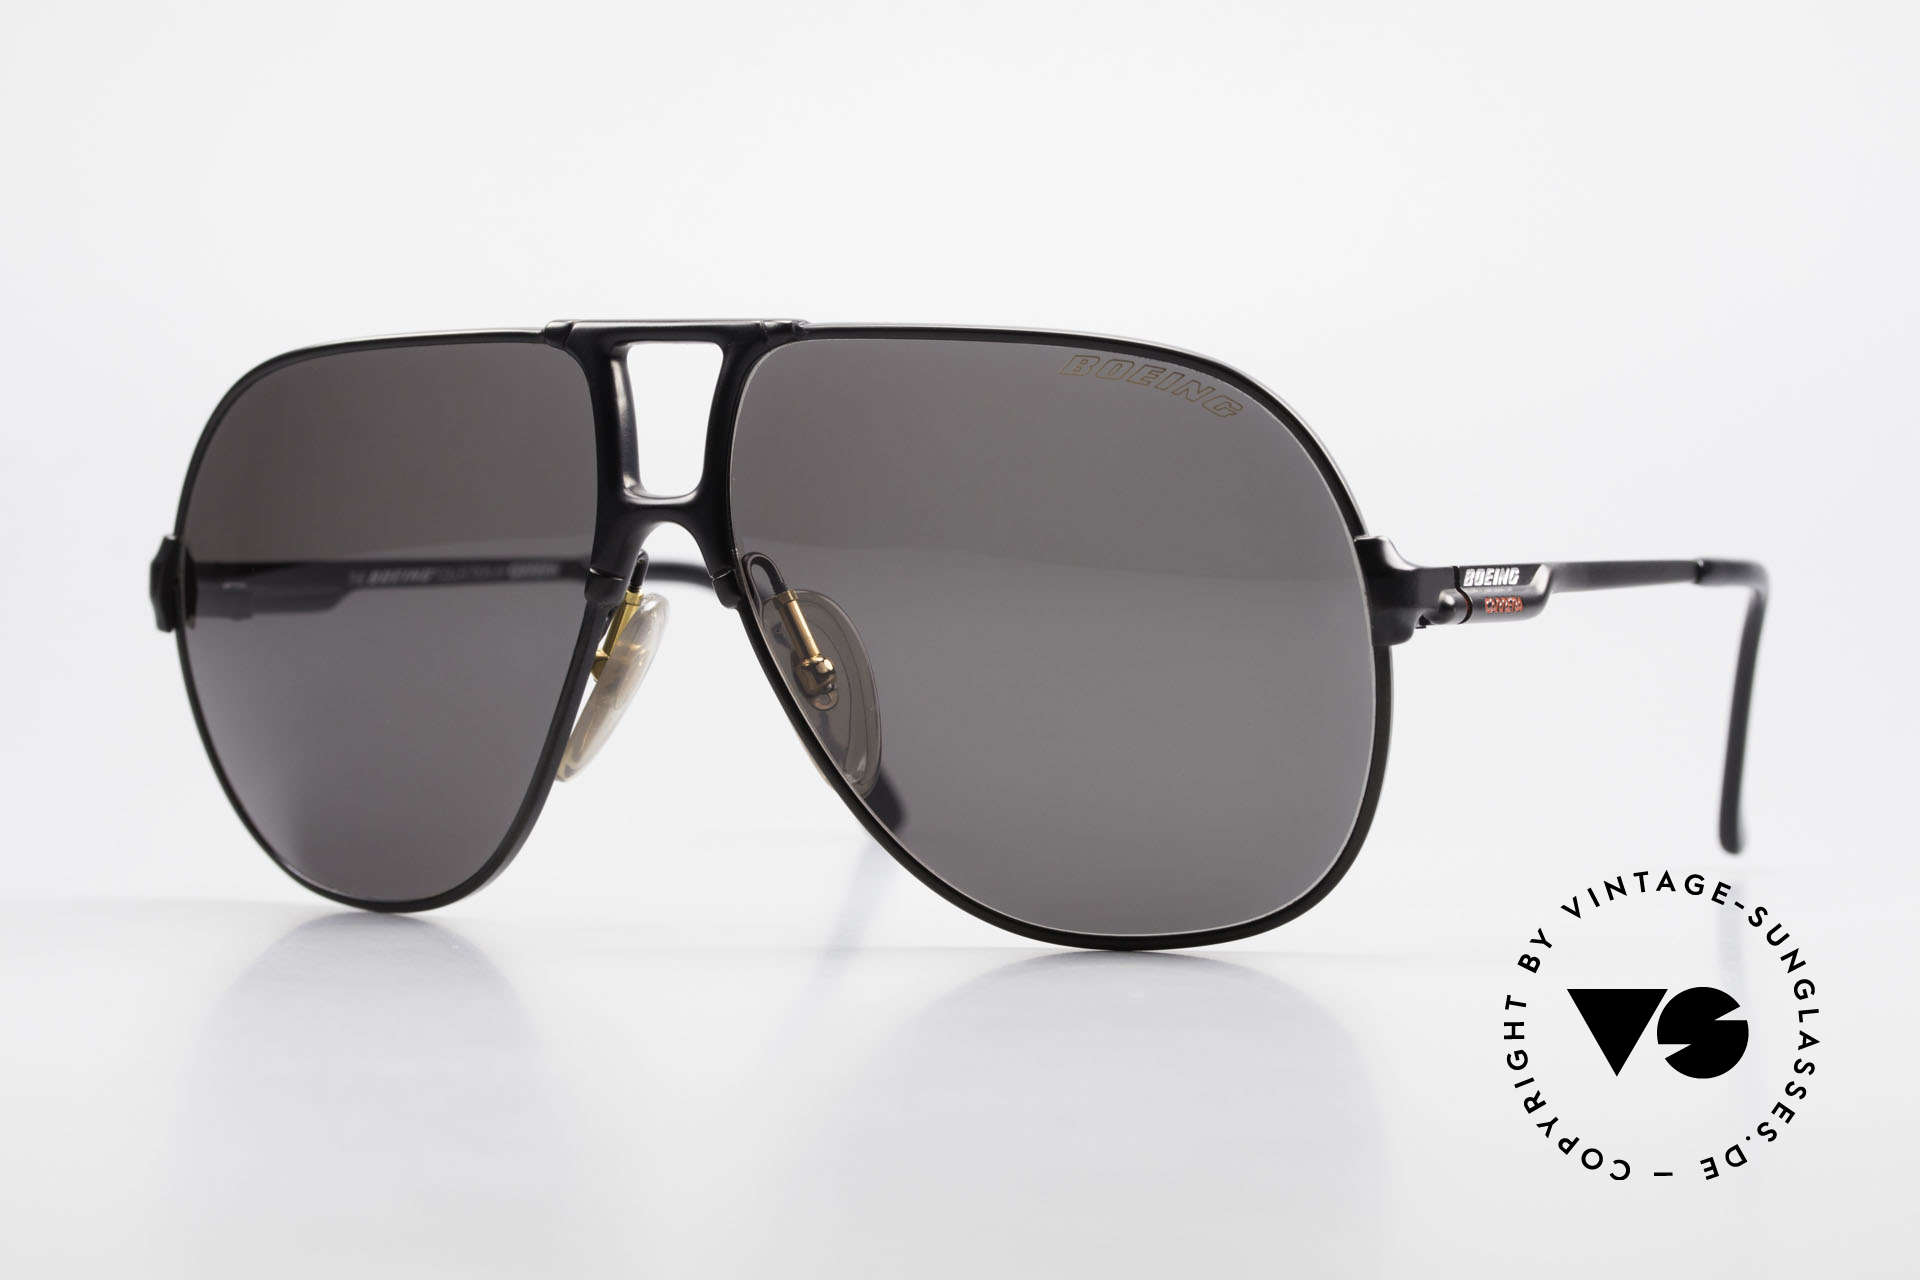 Boeing 5700 Vintage 80's Pilots Shades, The BOEING Collection by Carrera from 1988/1989, Made for Men and Women